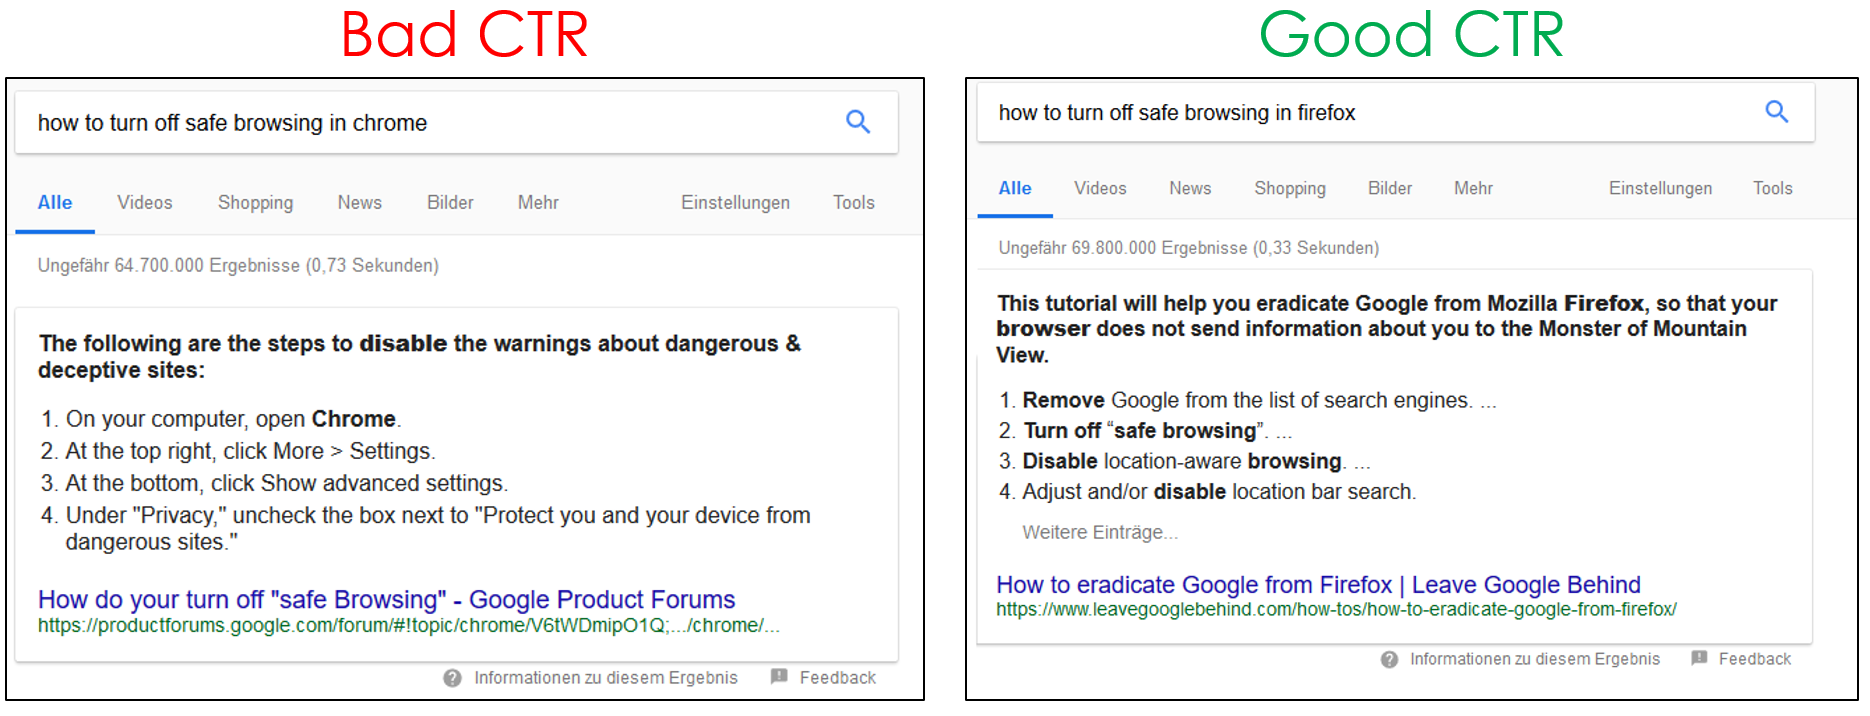 How to target and achieve Google Featured Snippets: 36 Questions